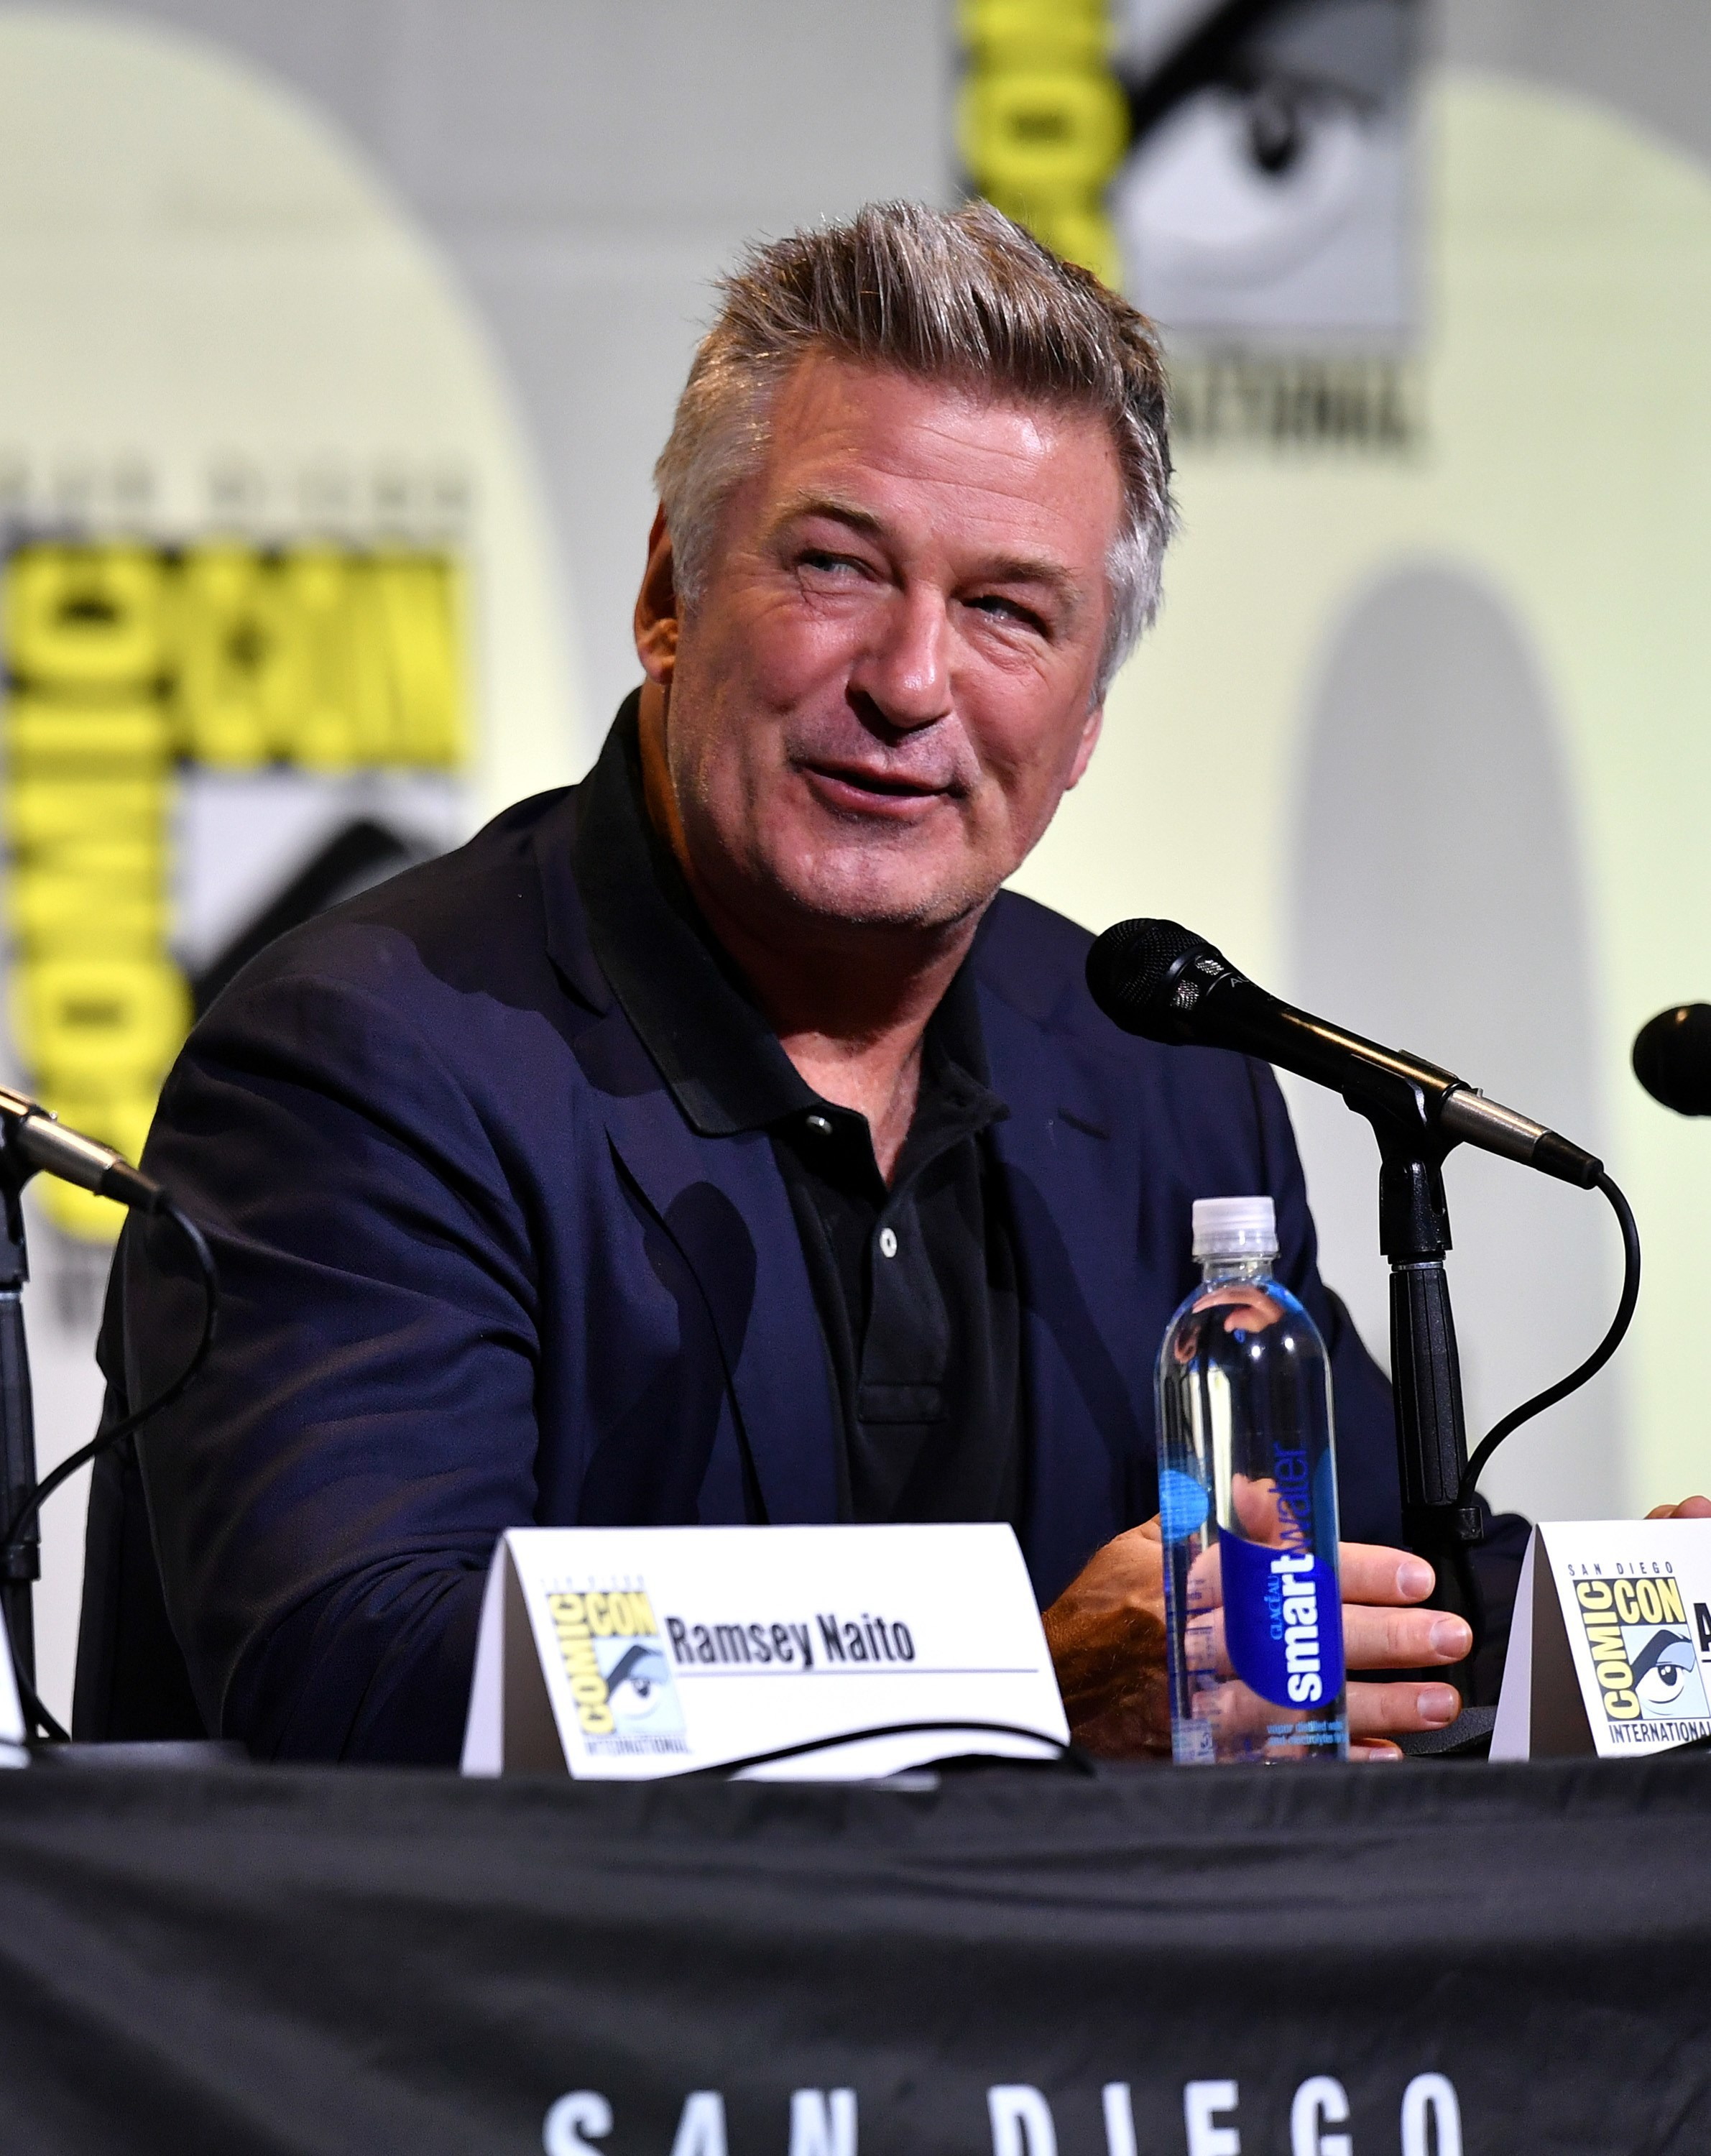 Alec Baldwin is feuding with George Clooney's Casamigos partner